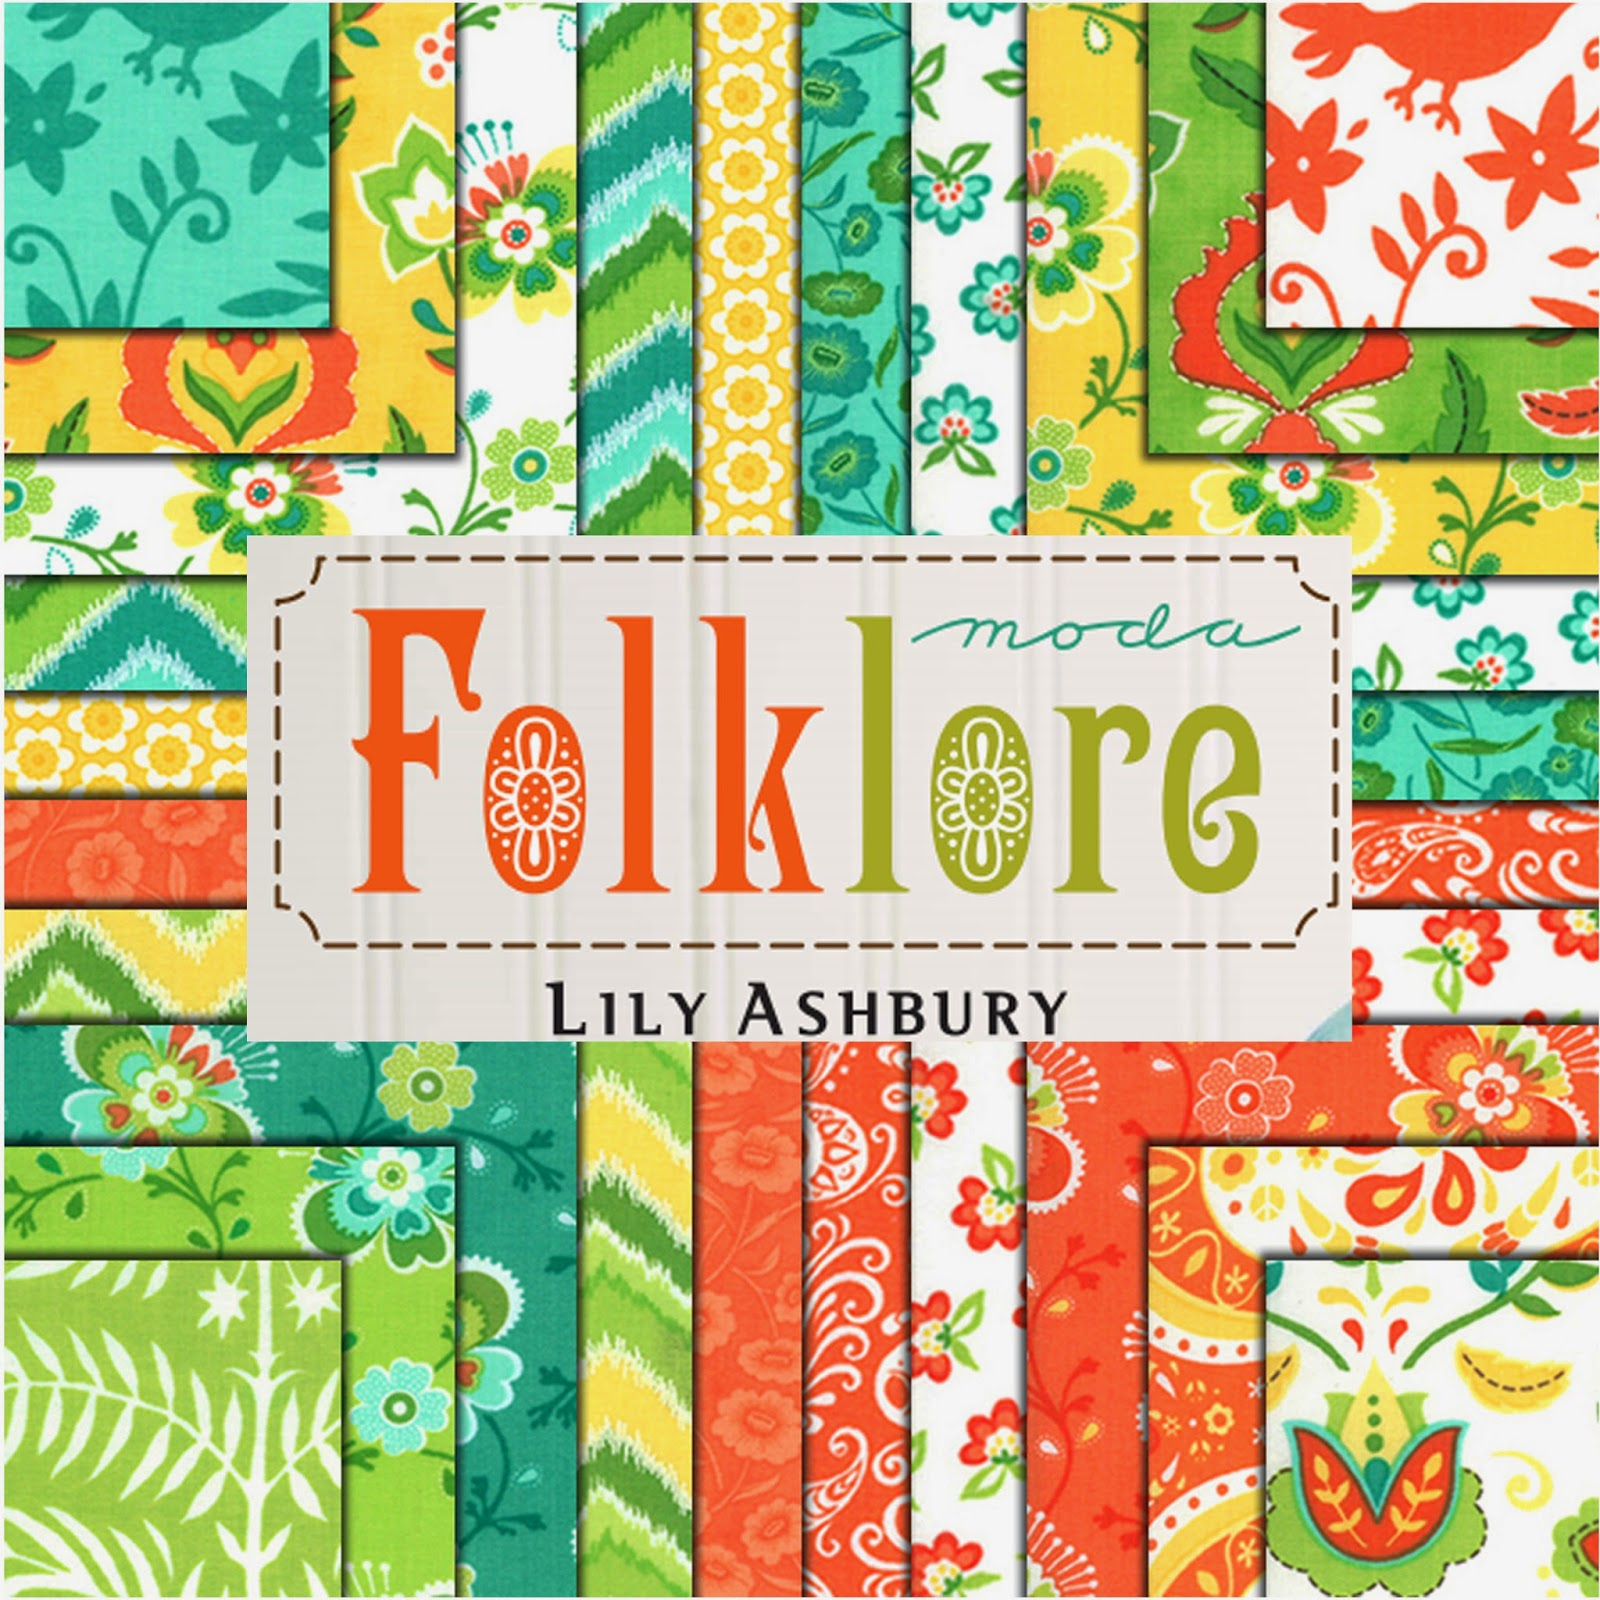 Moda FOLKLORE Quilt Fabric by Lily Ashbury for Moda Fabrics